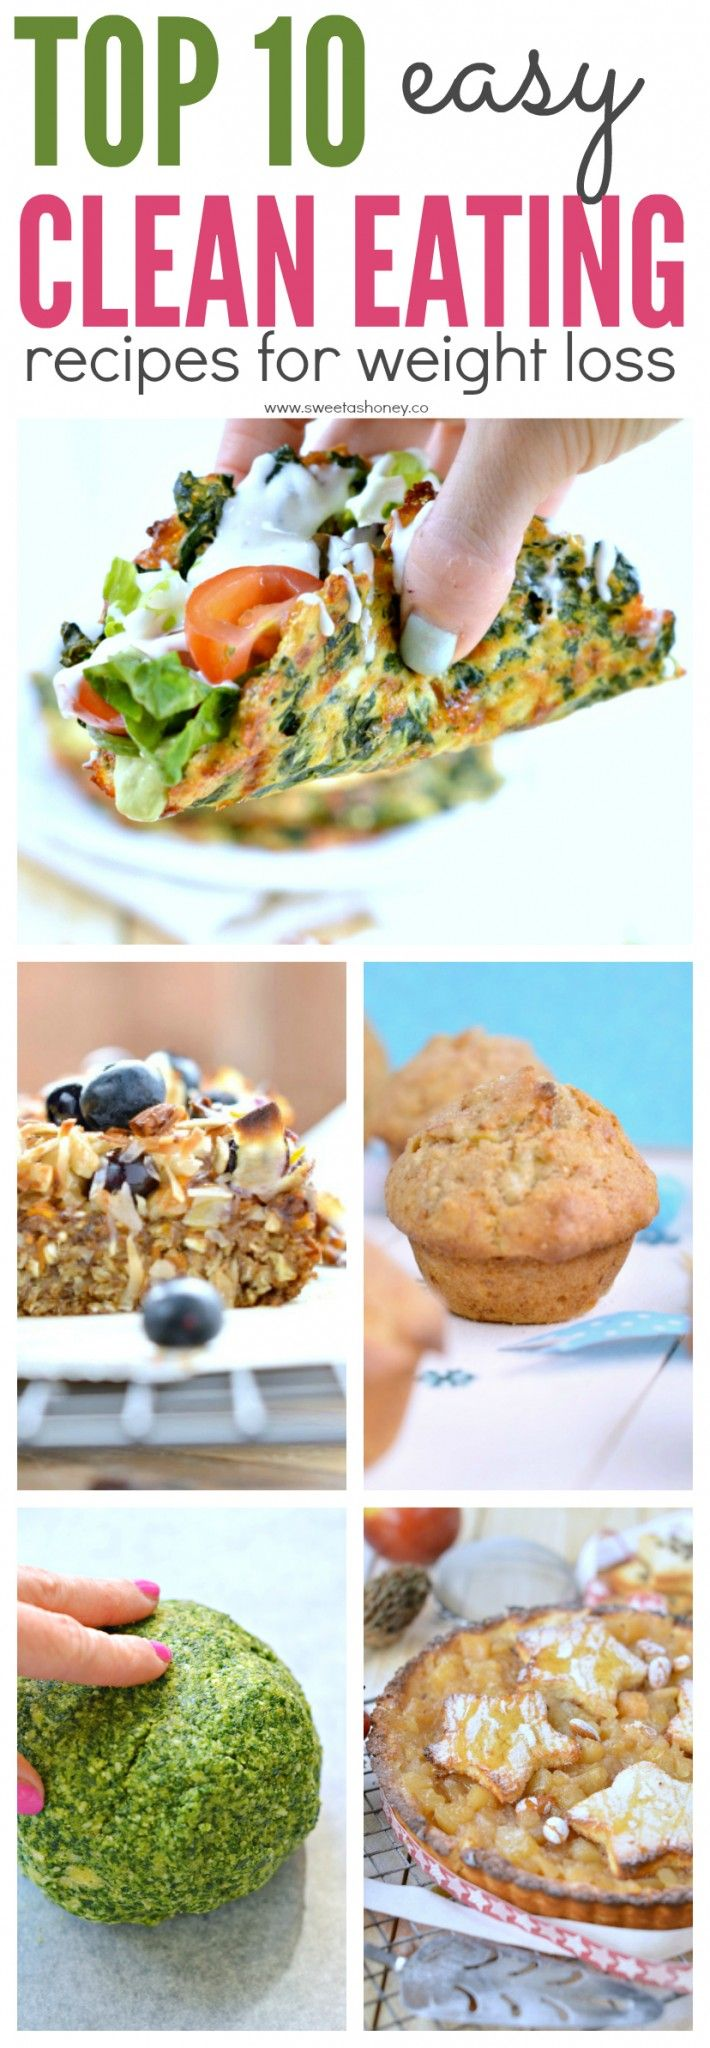 This is the top 10 clean eating recipes 2016 on Sweetashoney. The one you keep making and loving! I had a wonderful year blogging and sharing my recipes with you guys ! I hope I see you again on the blog in 2017. My recipe philosophy in 2017 will be the same. Simple, delicious and...Read More »